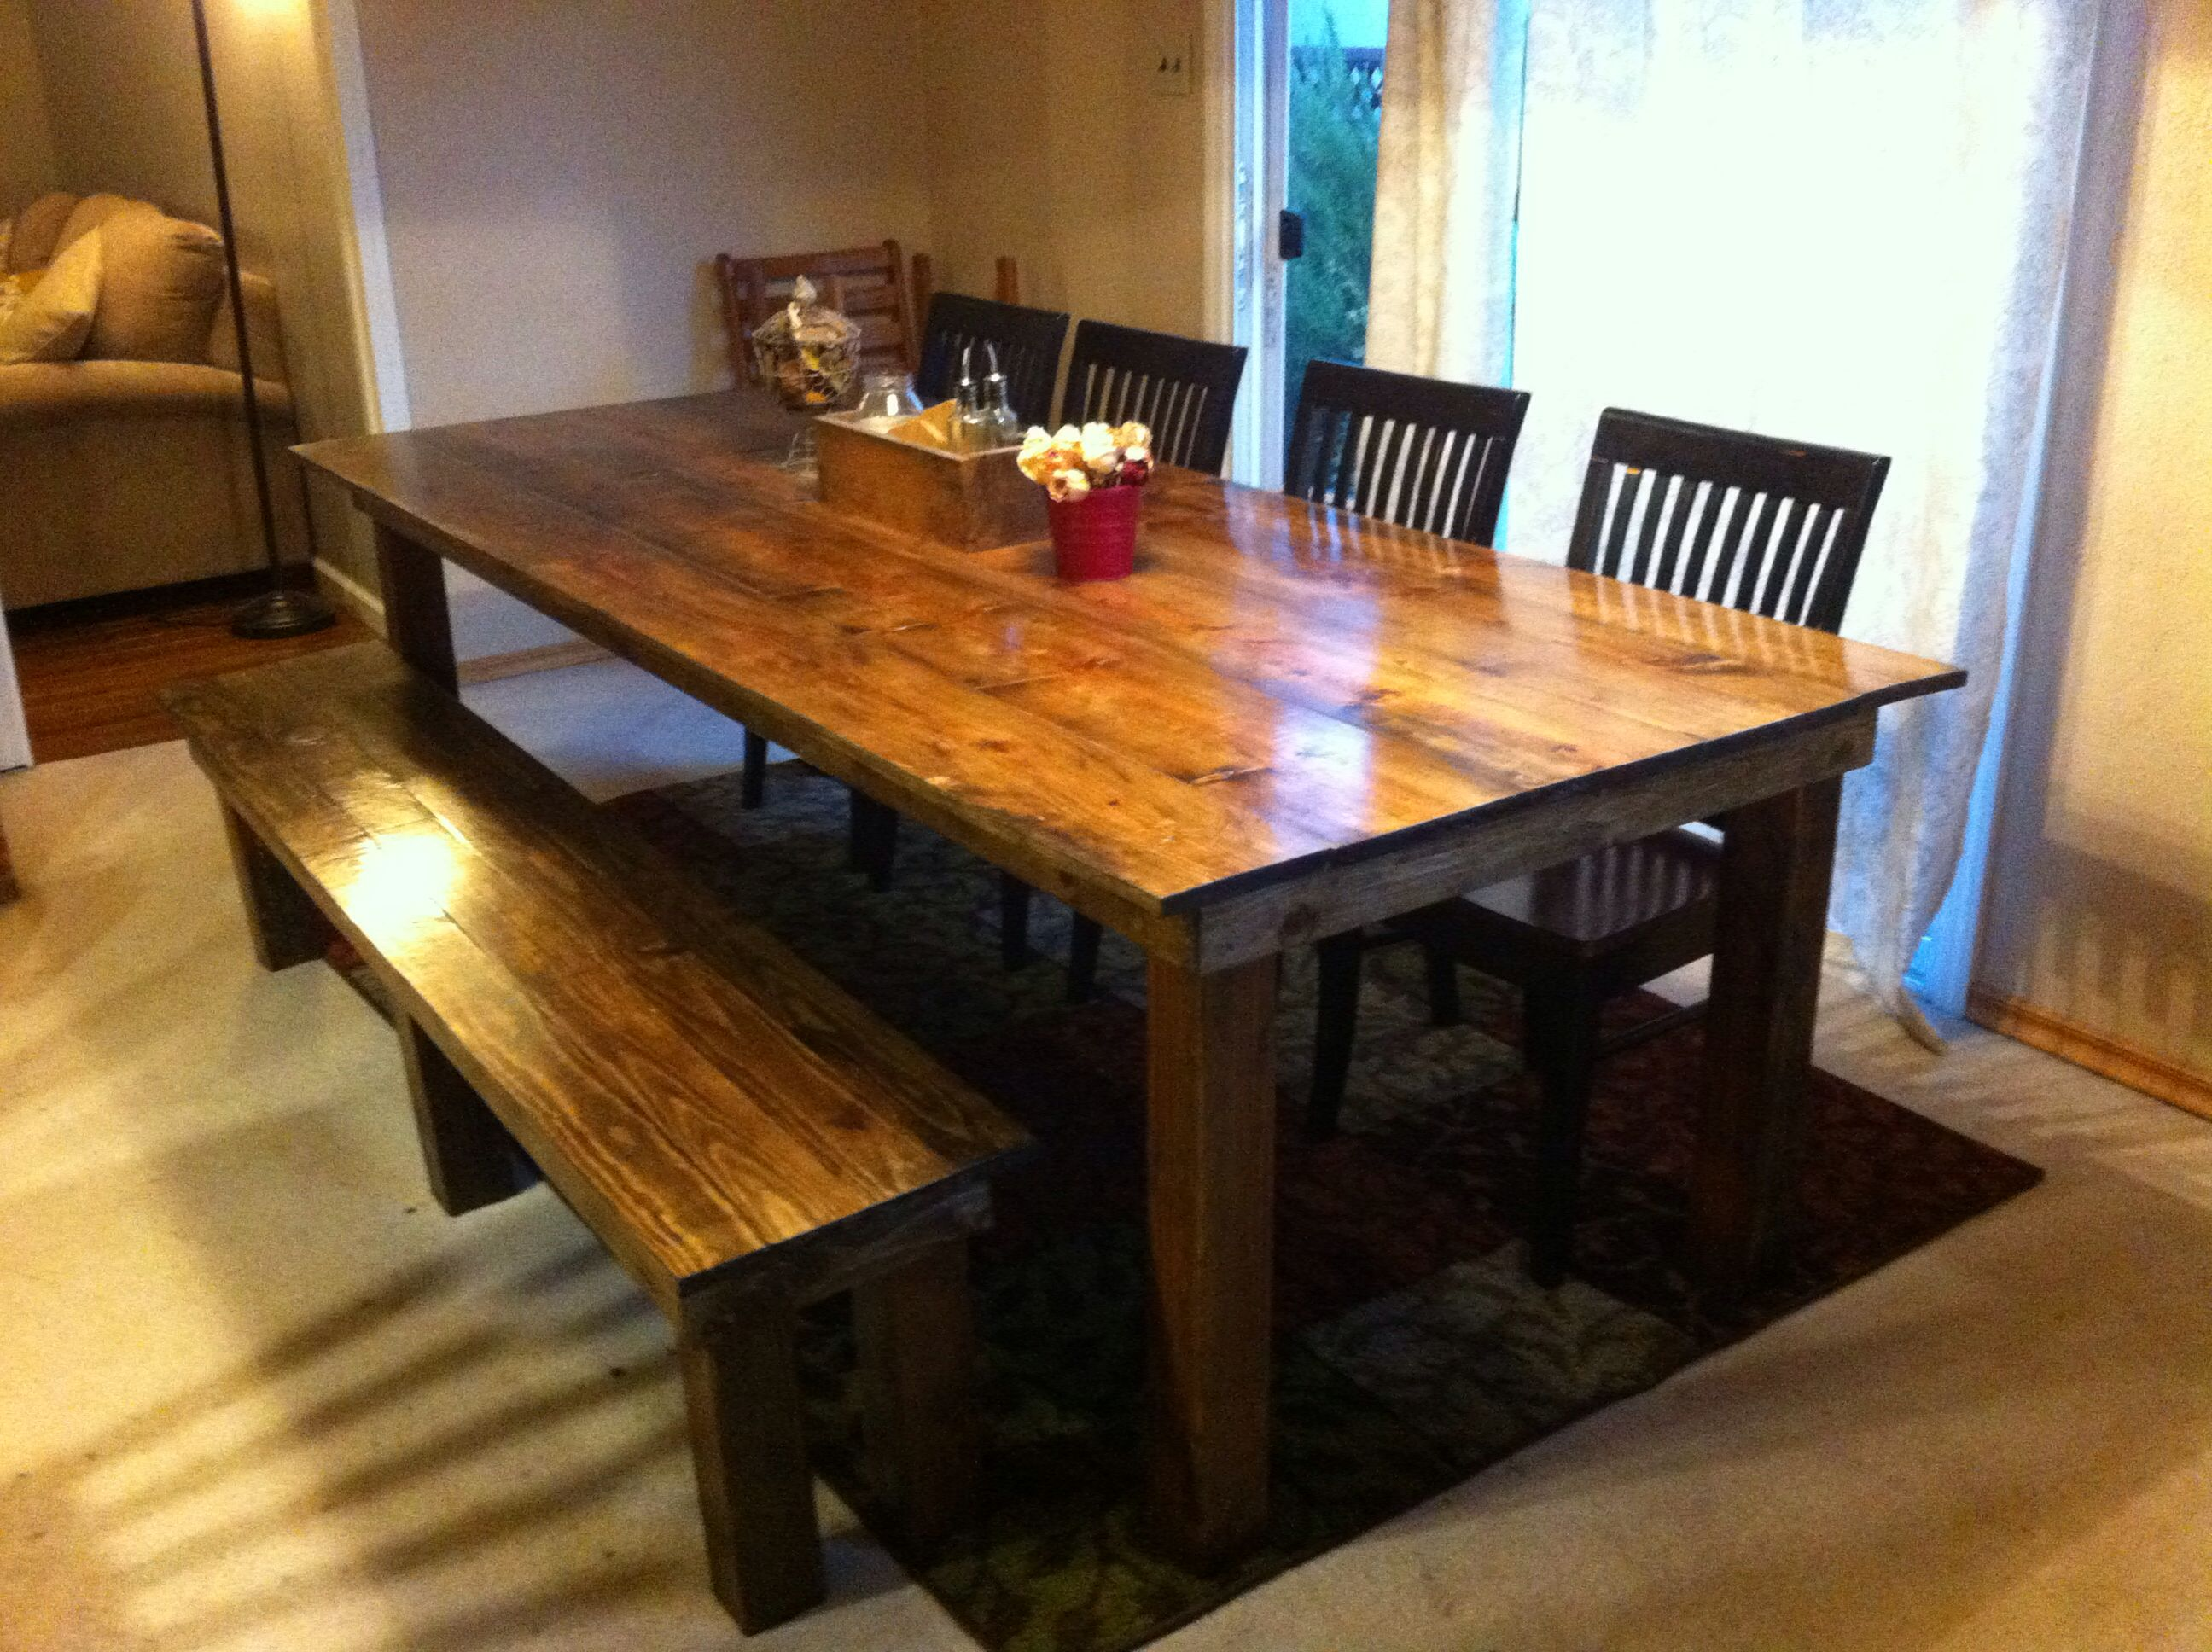 Easy Diy Dining Table Rustic Farmhouse Wood Dining Table And Bench Ana White Plans